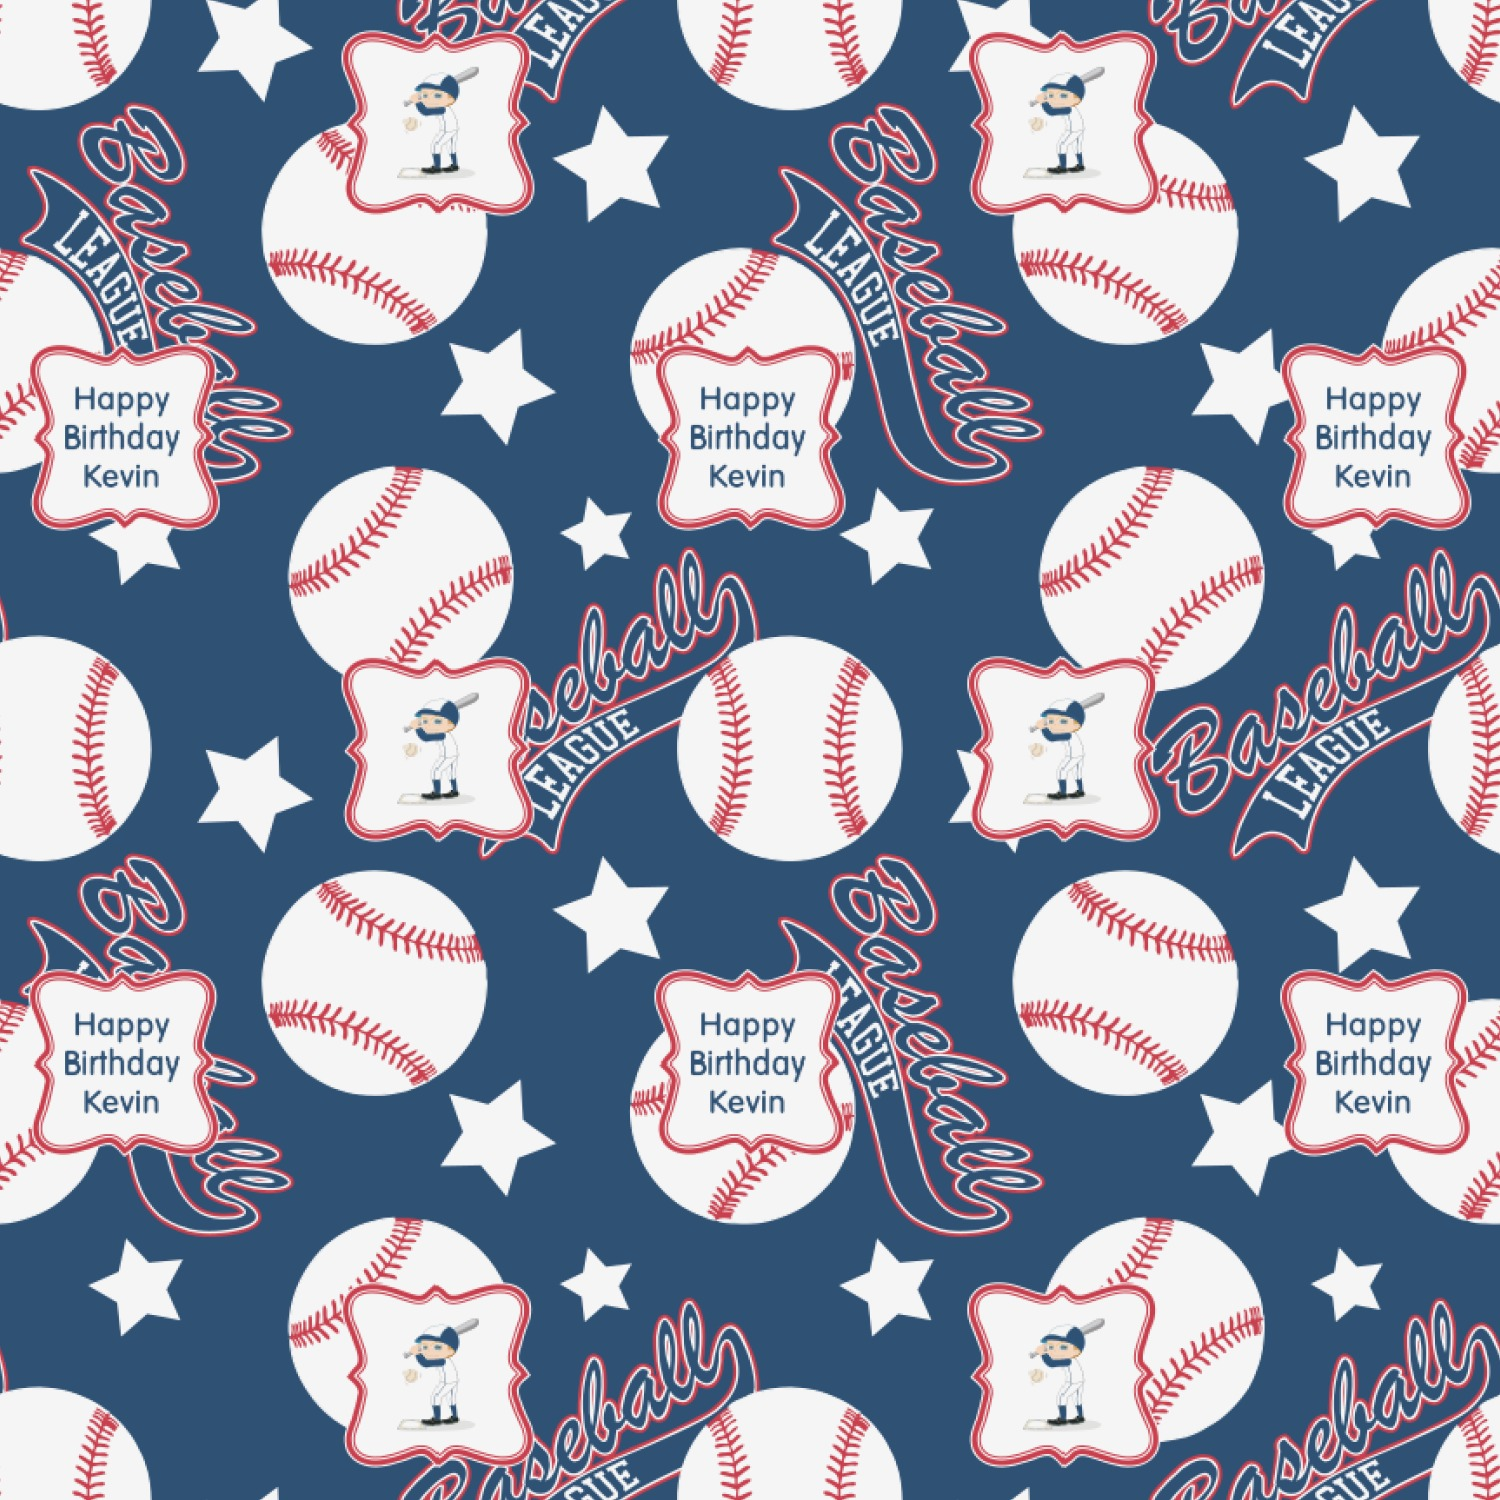 Customized wrapping paper